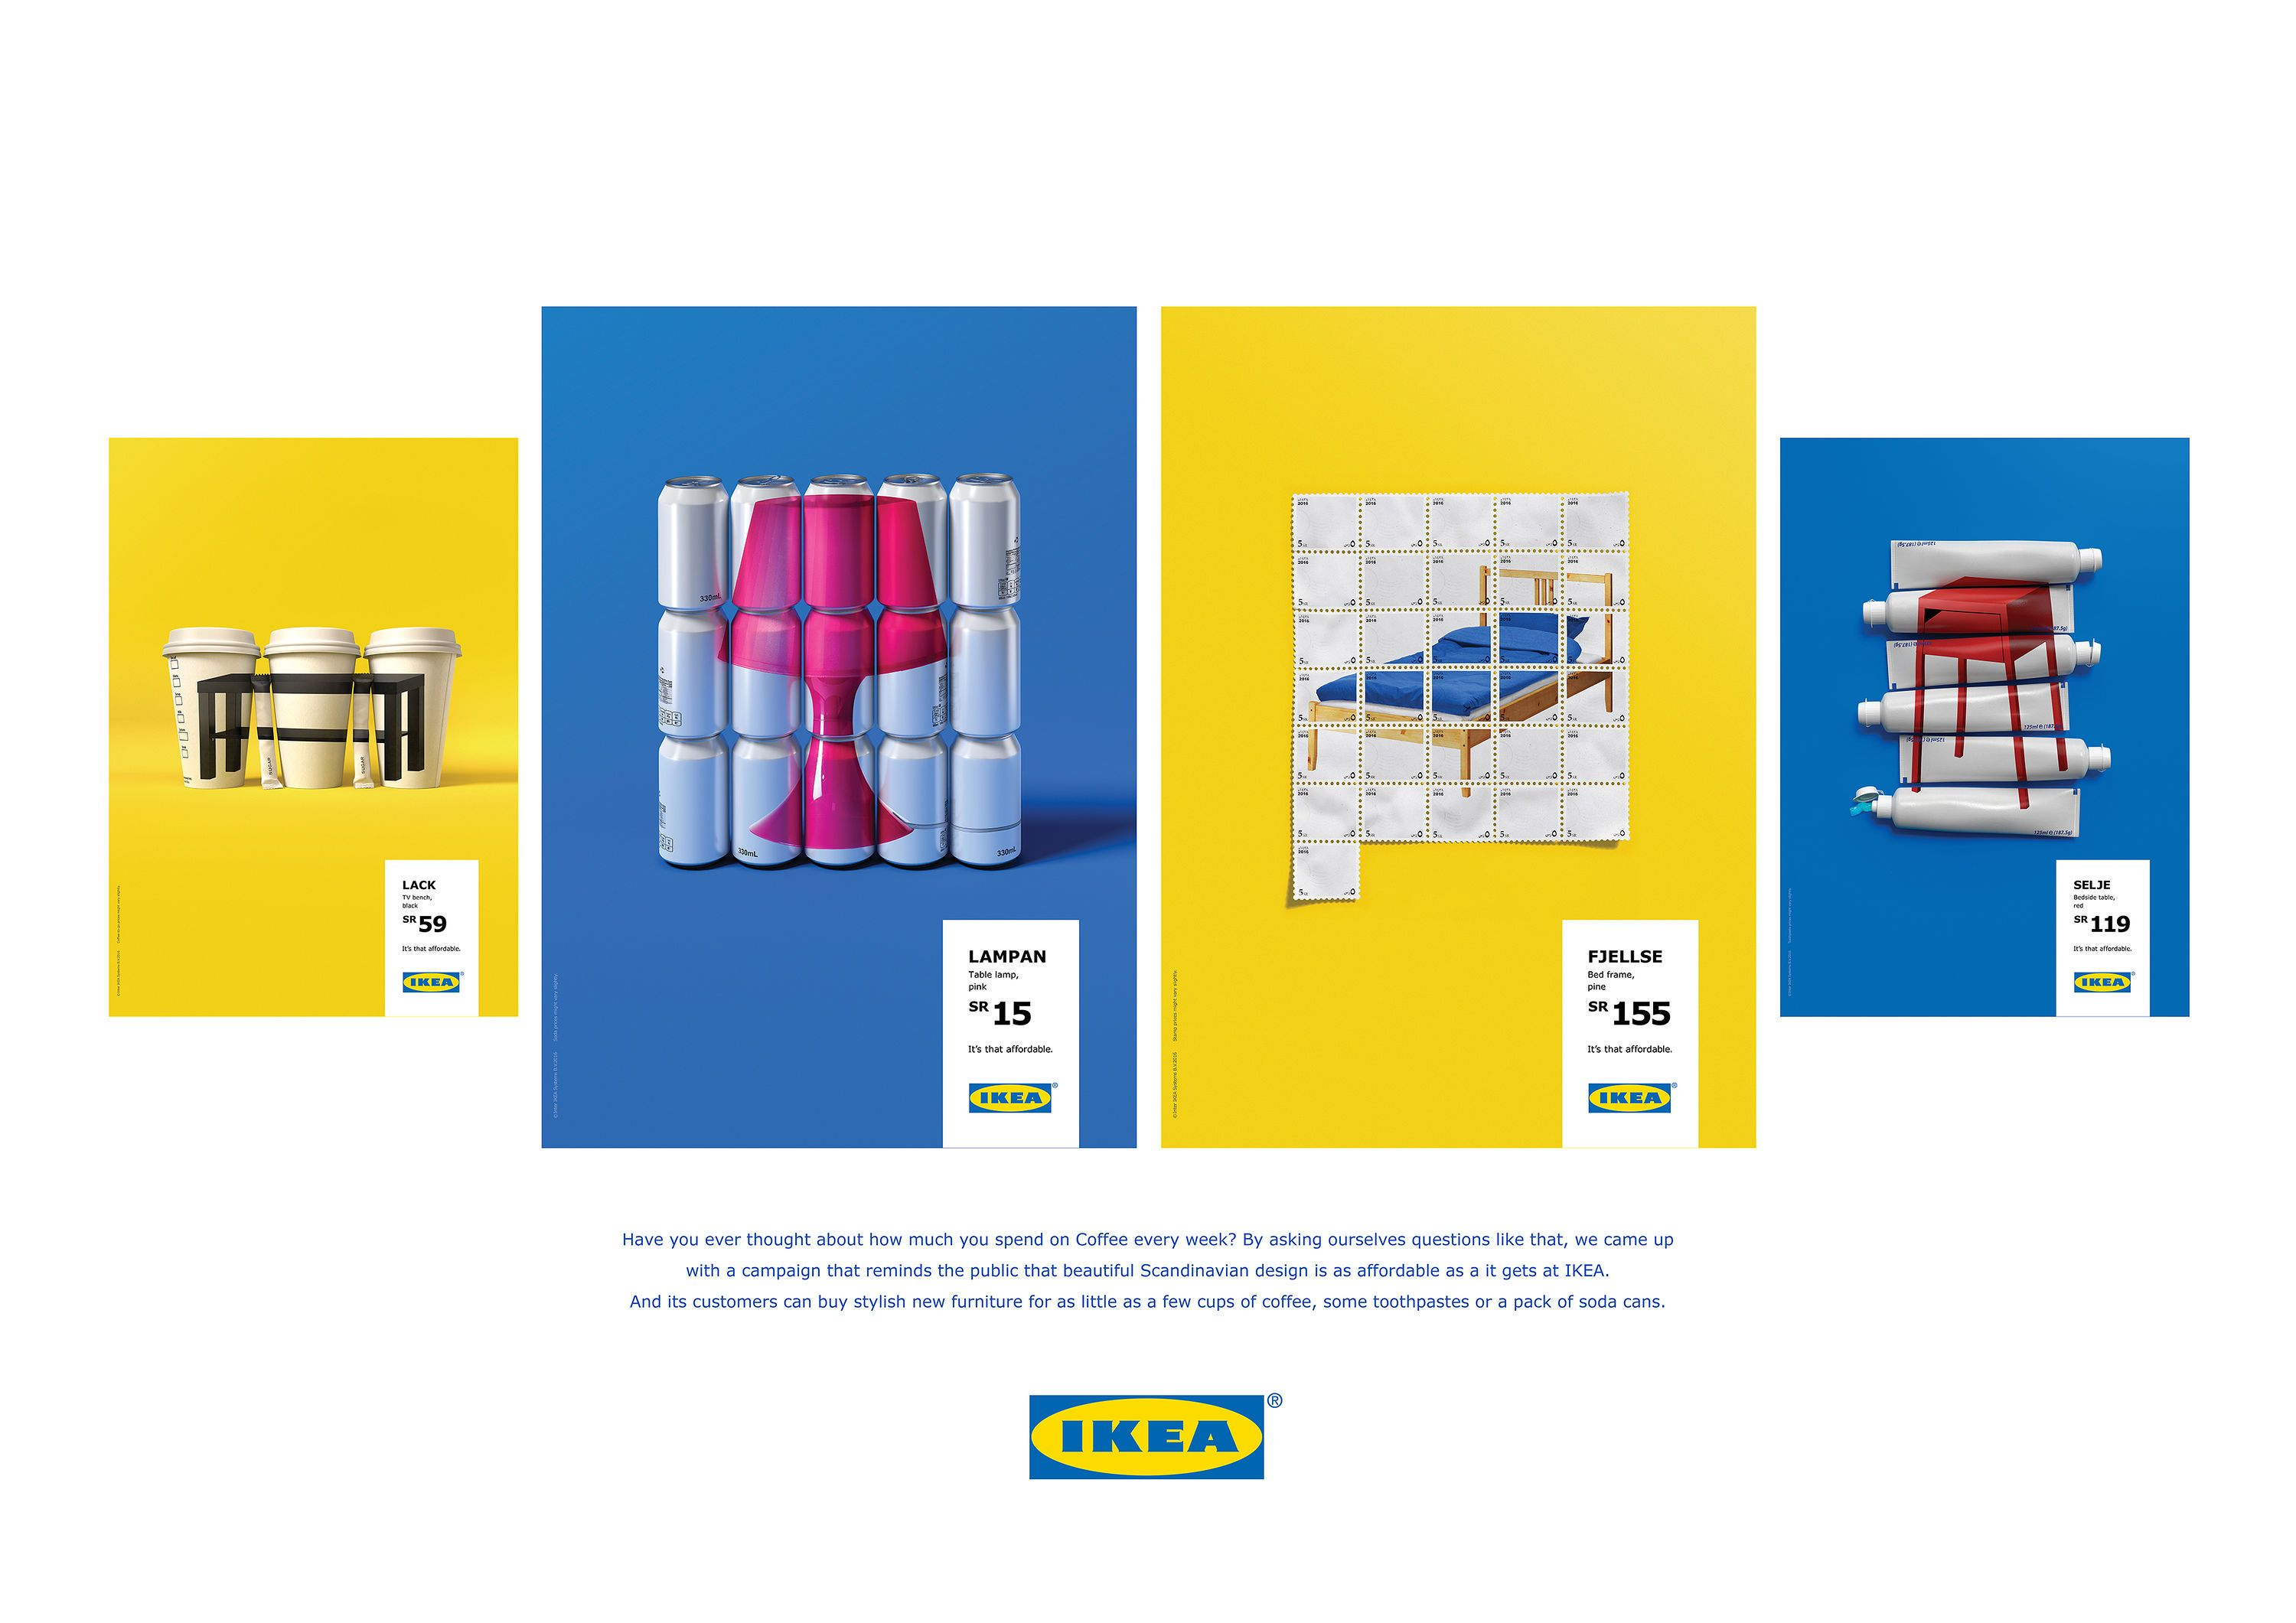 ikea it 39 s that affordable ikea furniture colourful poster advertising campaign award. Black Bedroom Furniture Sets. Home Design Ideas